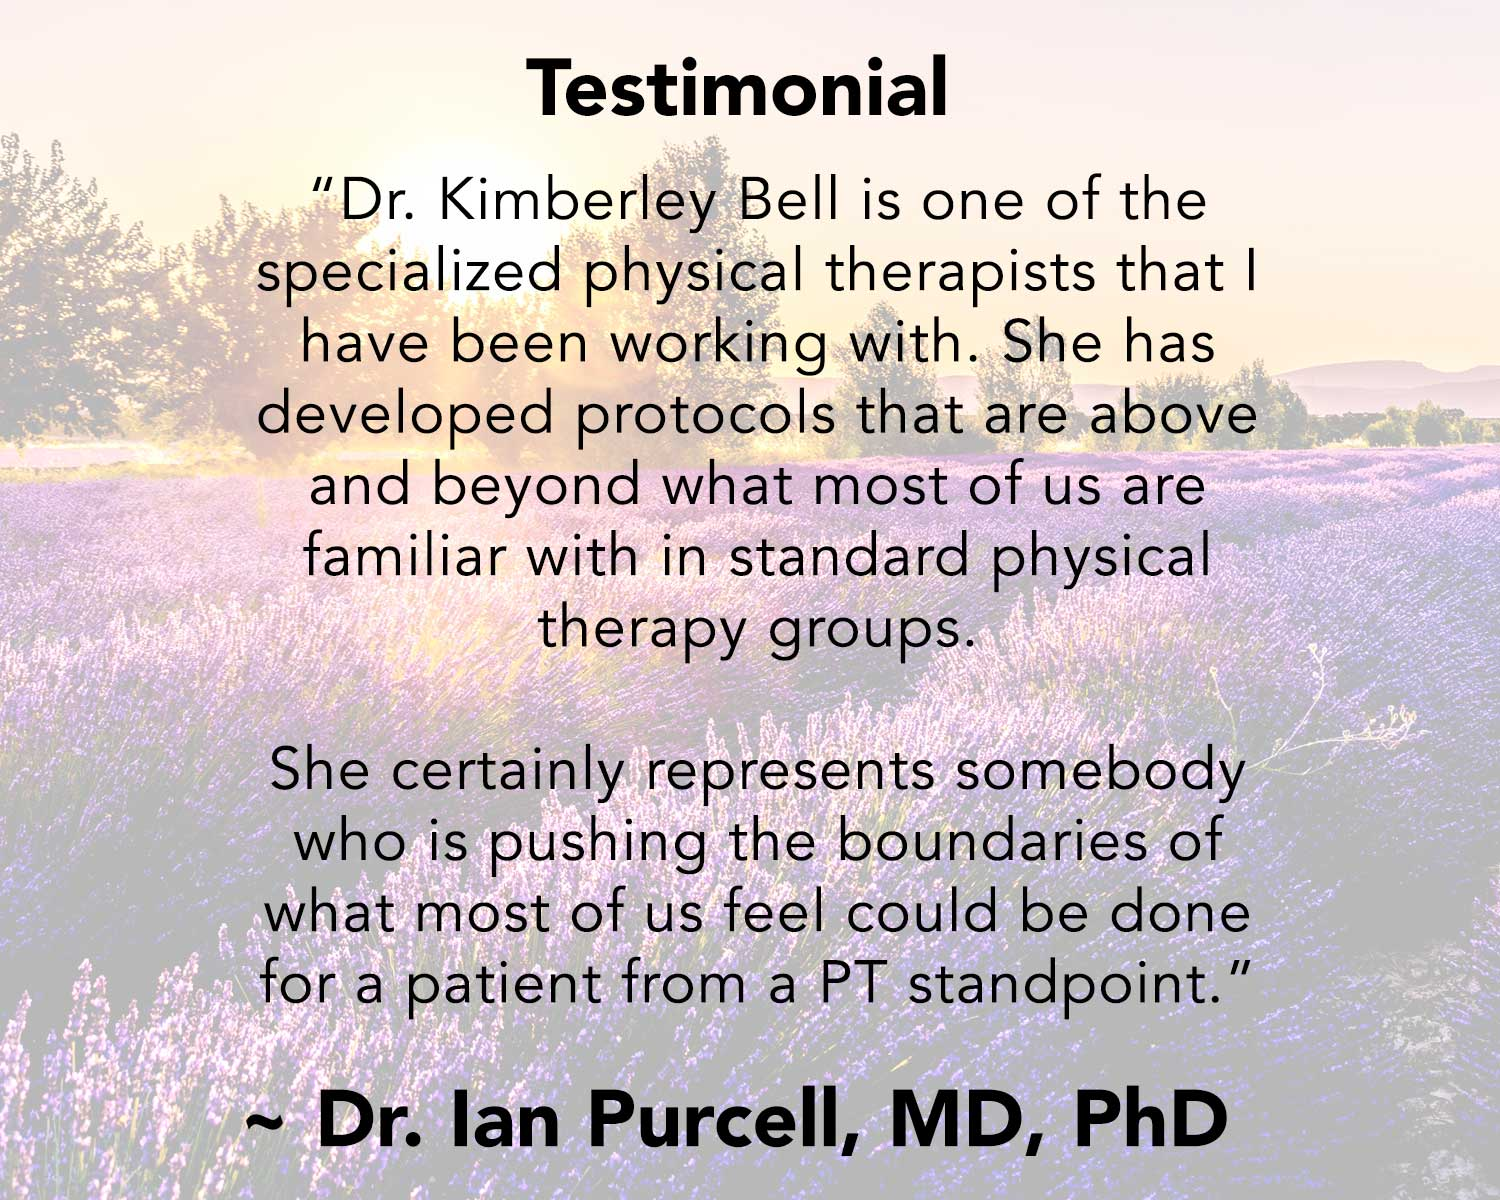 Suffering from Vertigo? Ian Purcell Testimonial